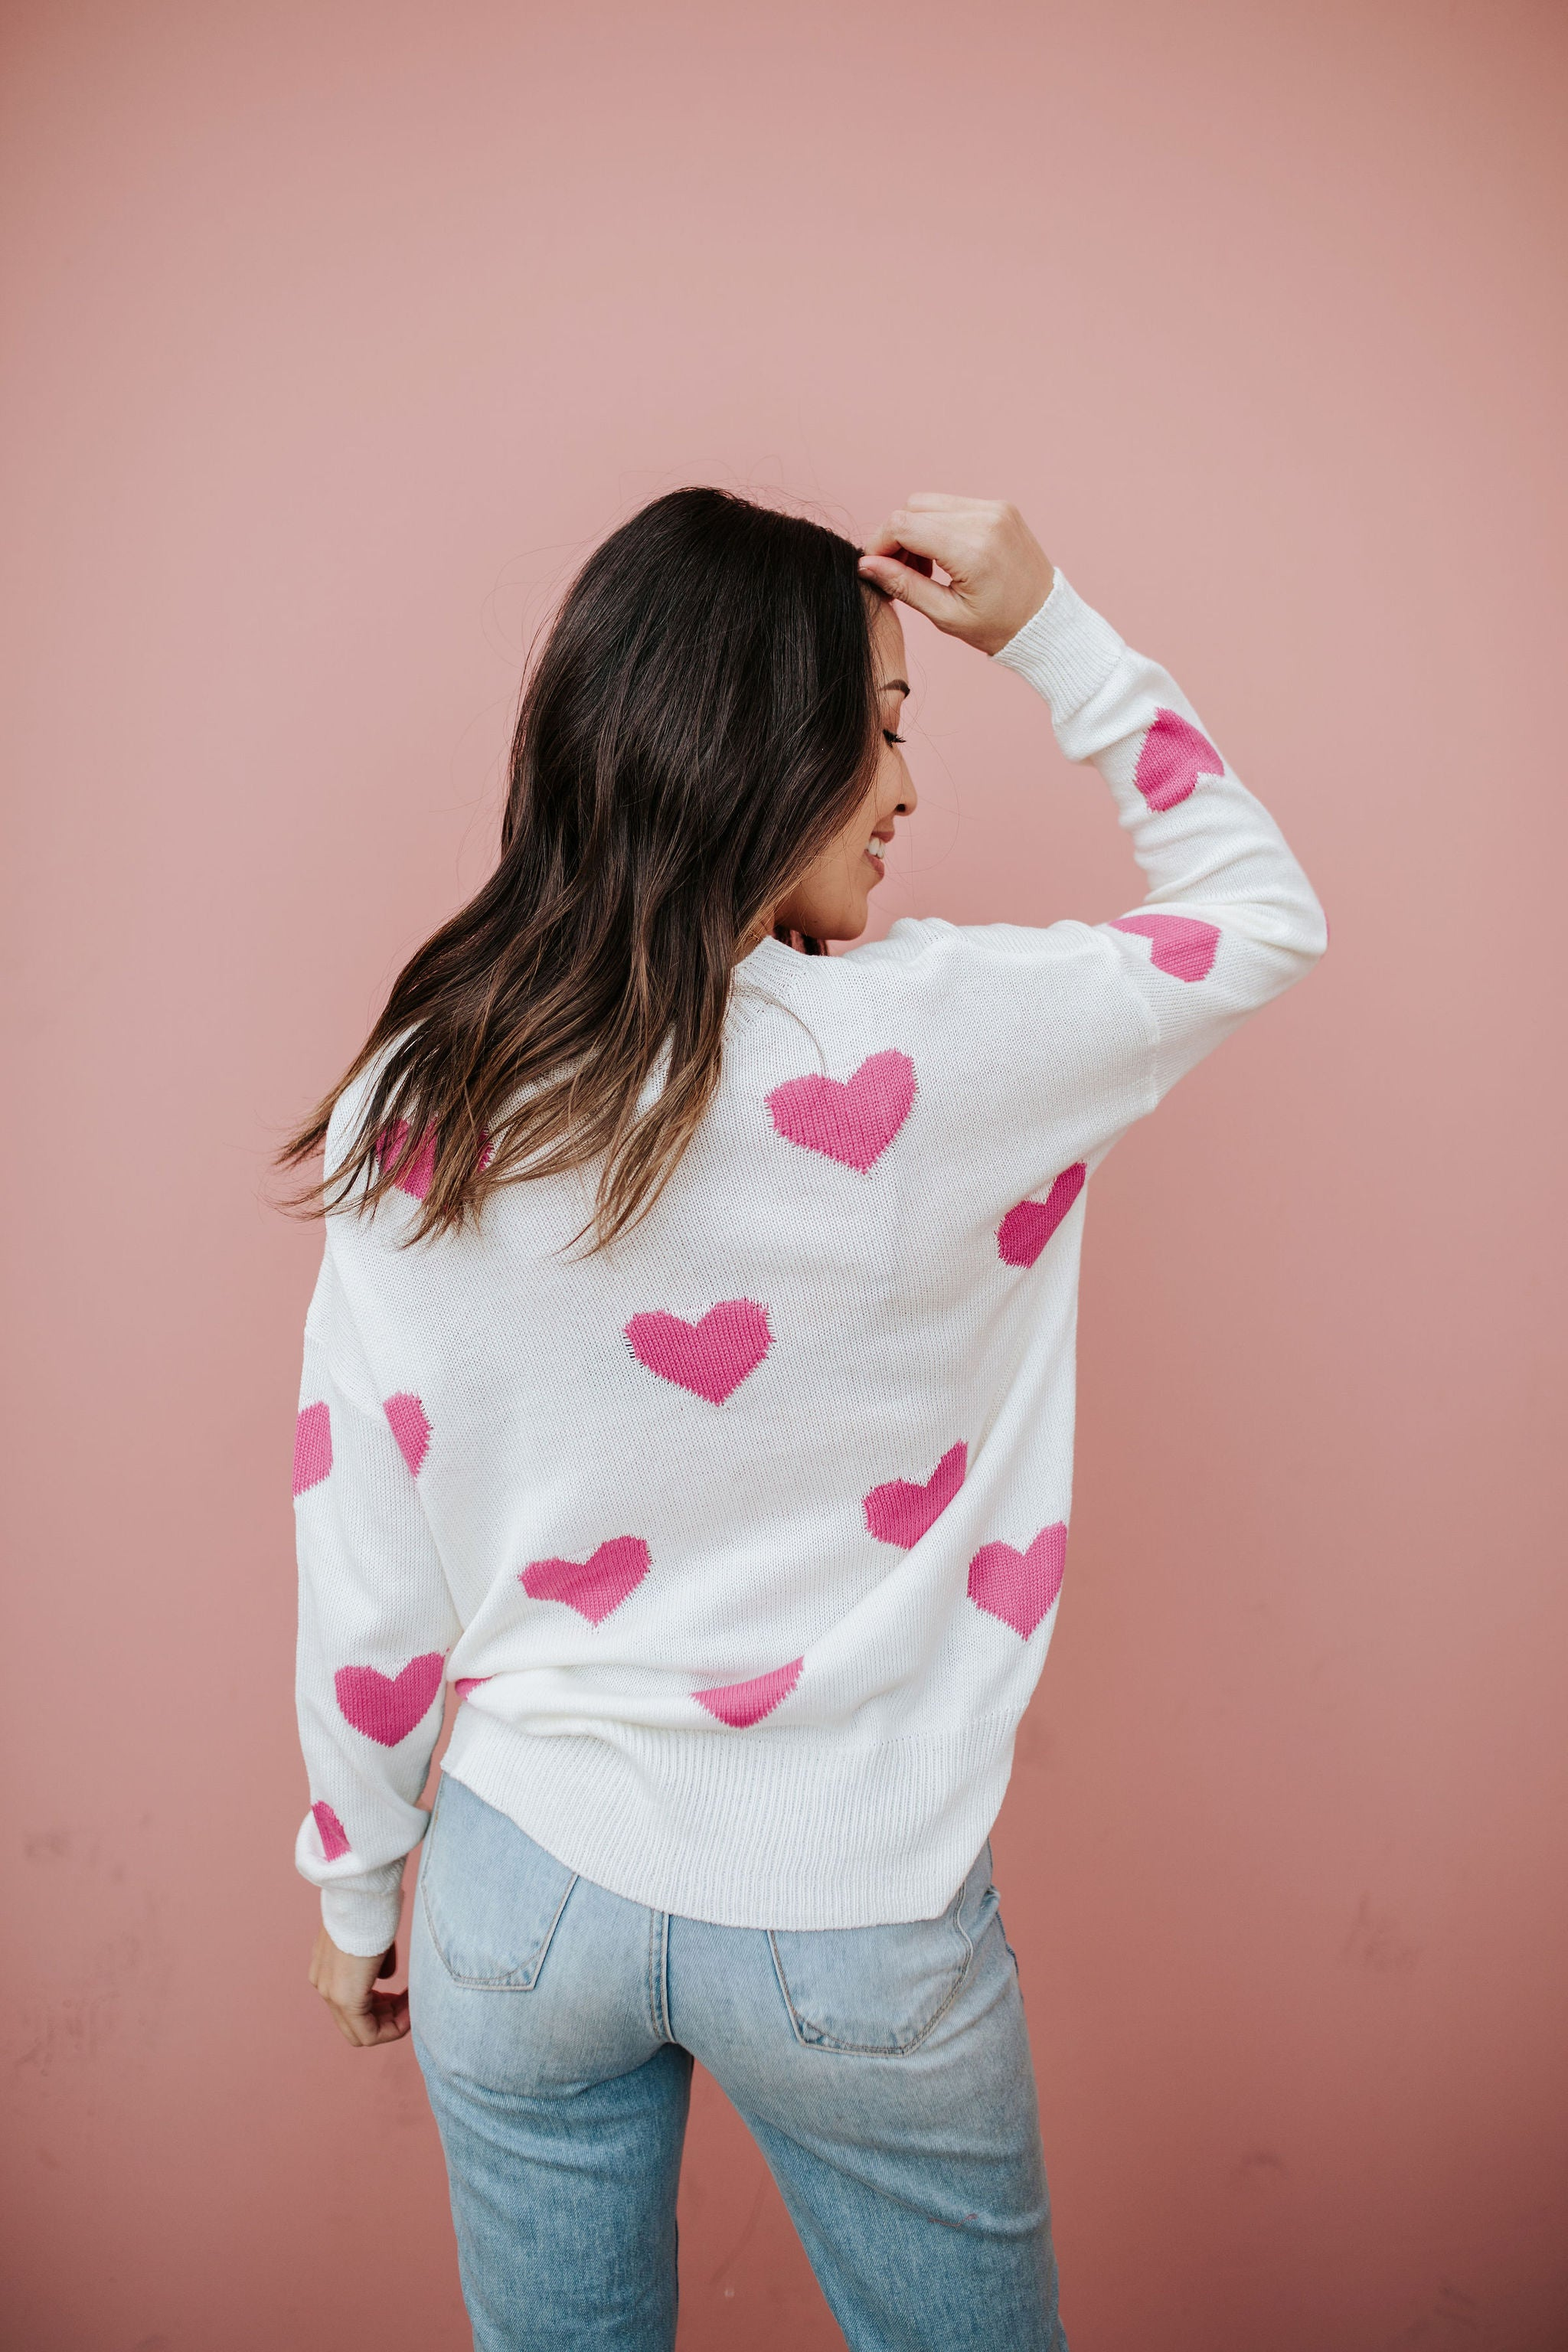 THE MI AMOR HEART SWEATER IN WHITE